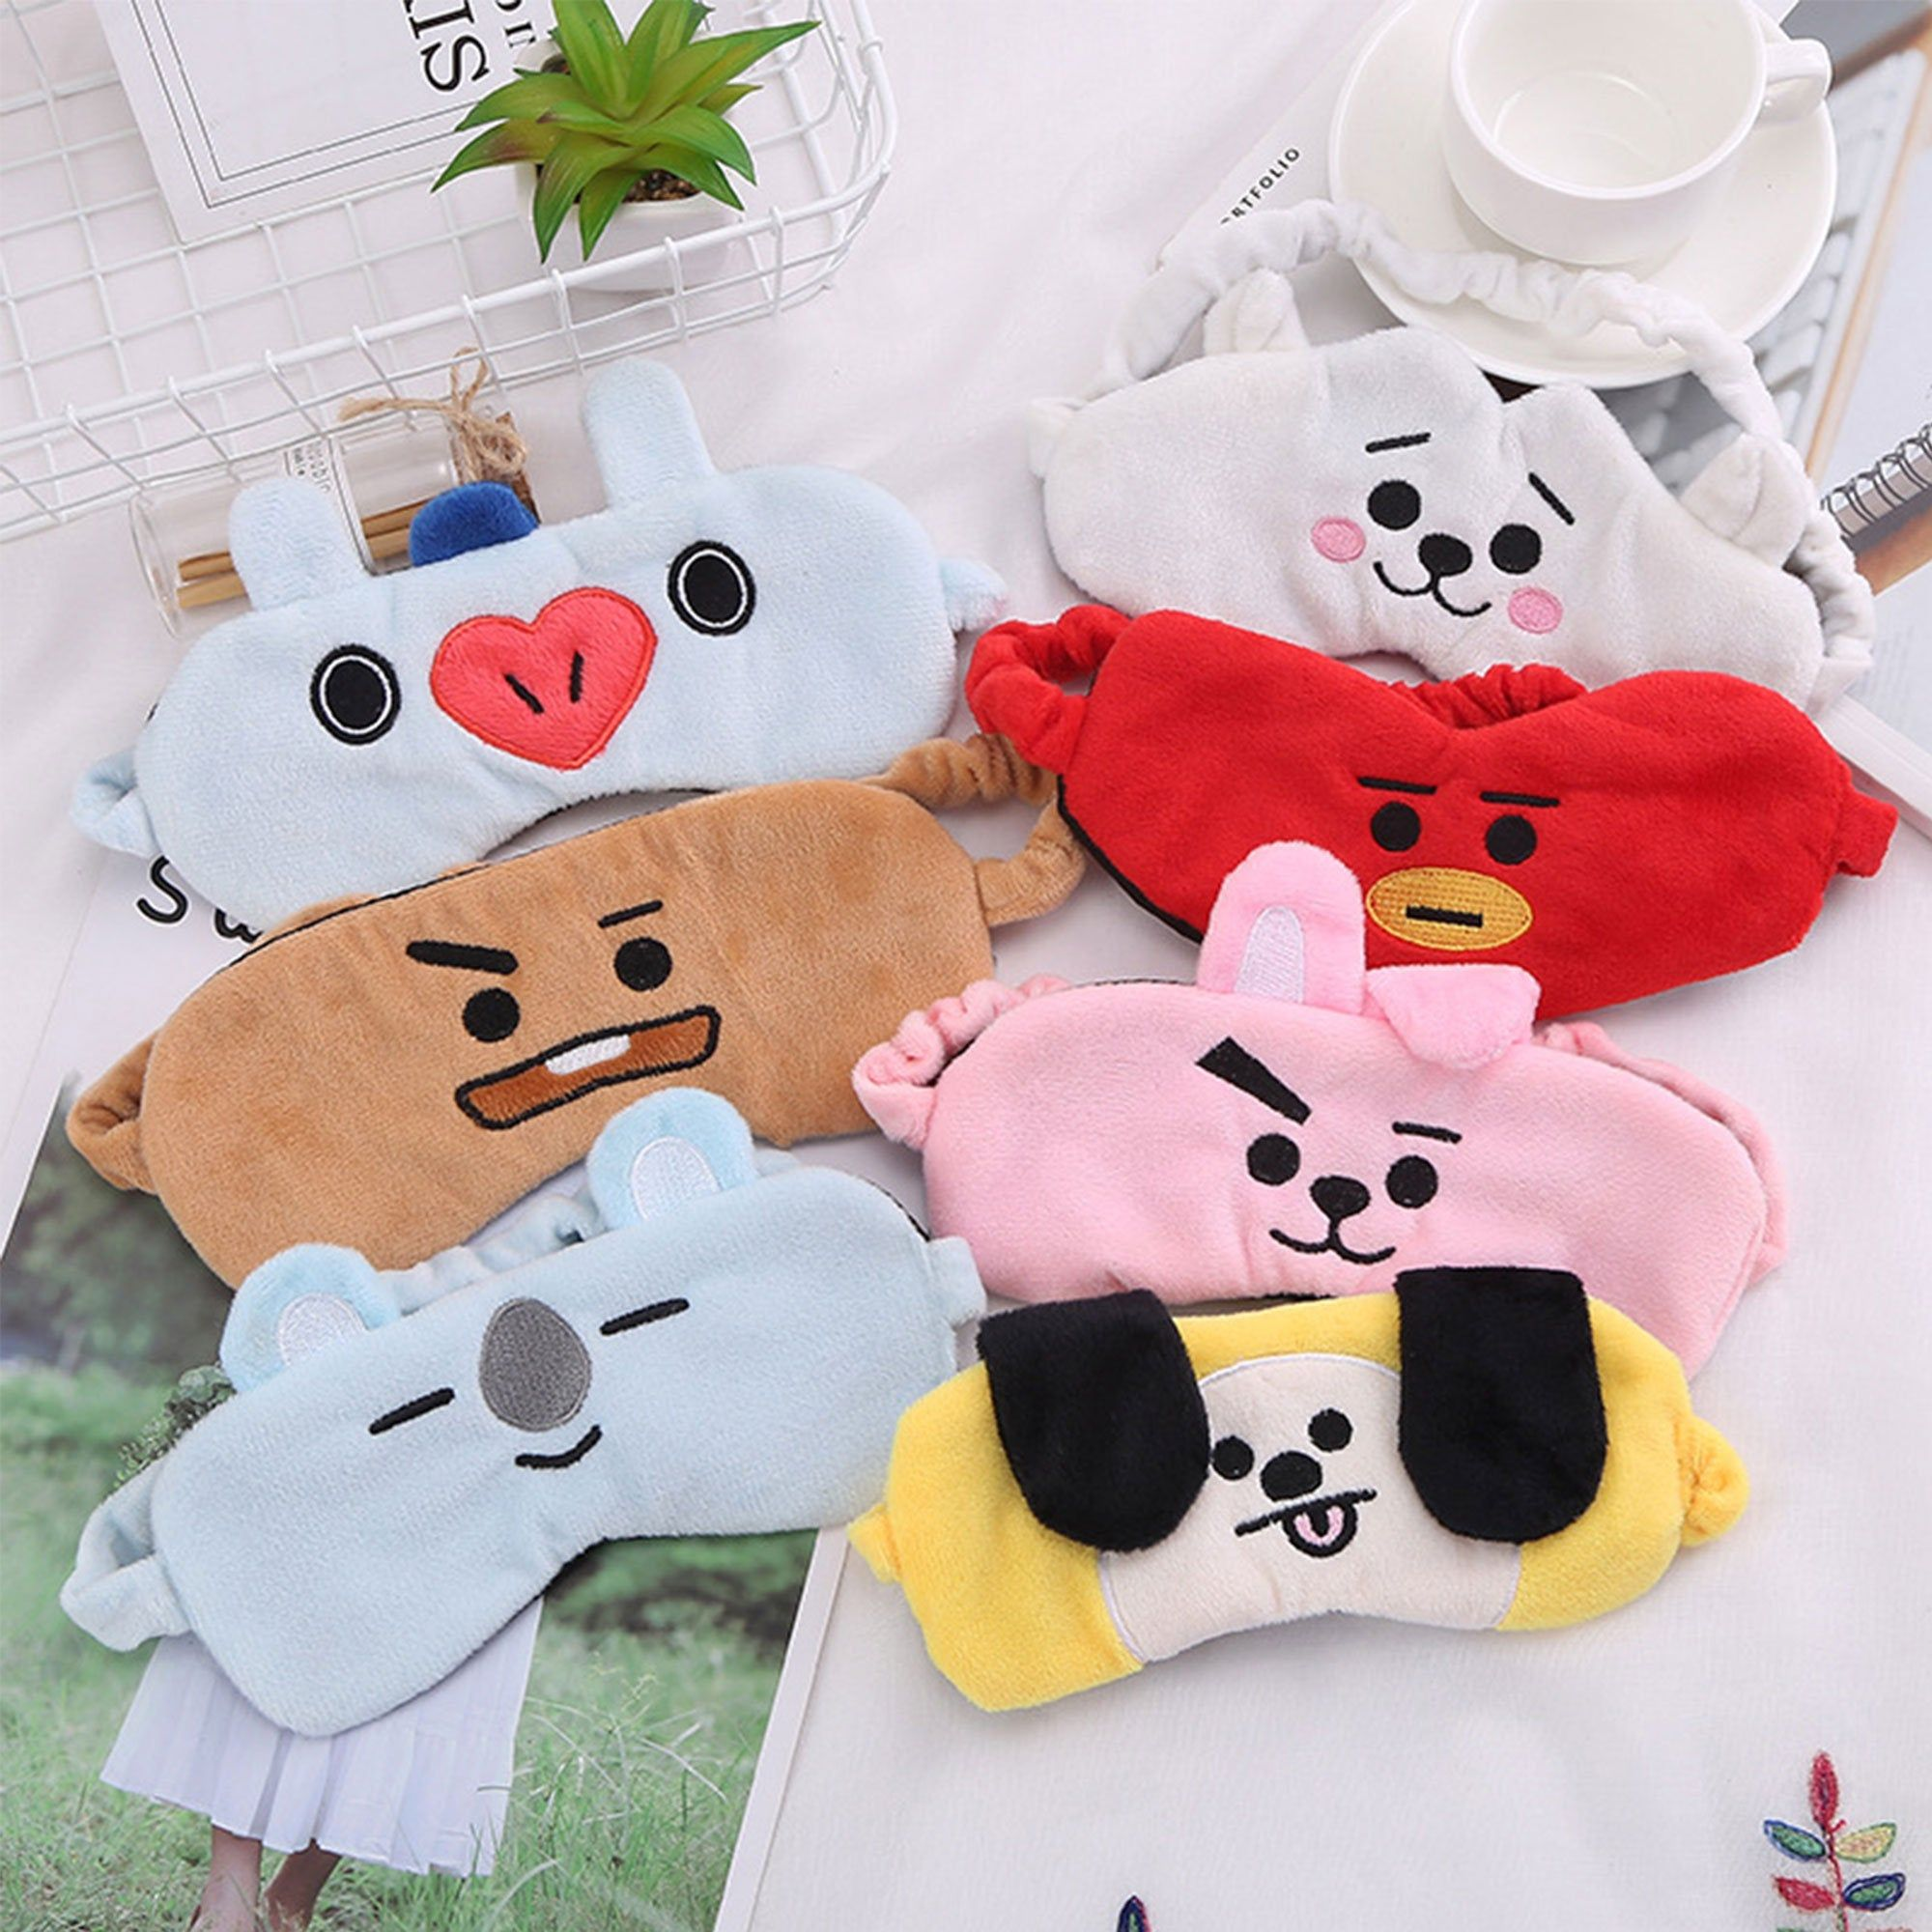 Bts Sleep Mask Bt21 Sleep Mask Bt21 Cooky Bt21 Tata Bt21 Chimmy Bt21 Rj Bts Merch Bts Kpop Unofficial In 2020 Sleep Mask Bts Merch Birthday Gifts For Girlfriend